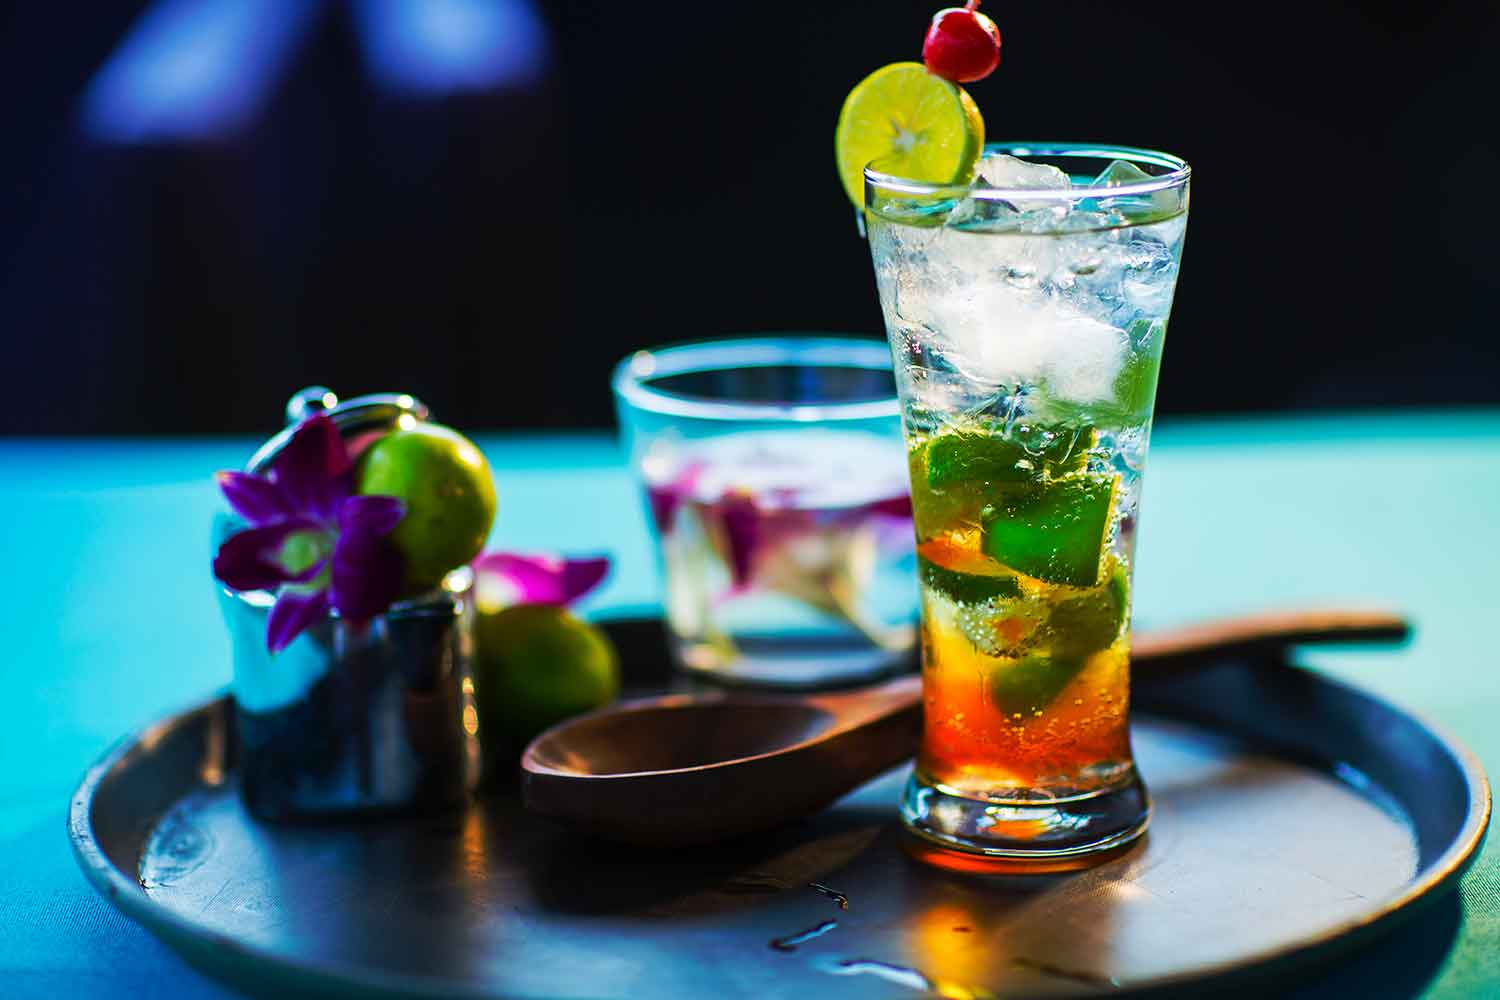 Enjoy cocktails at the Night Market by the Four Seasons Resort Maui's master mixologist, Ben Yabrow.